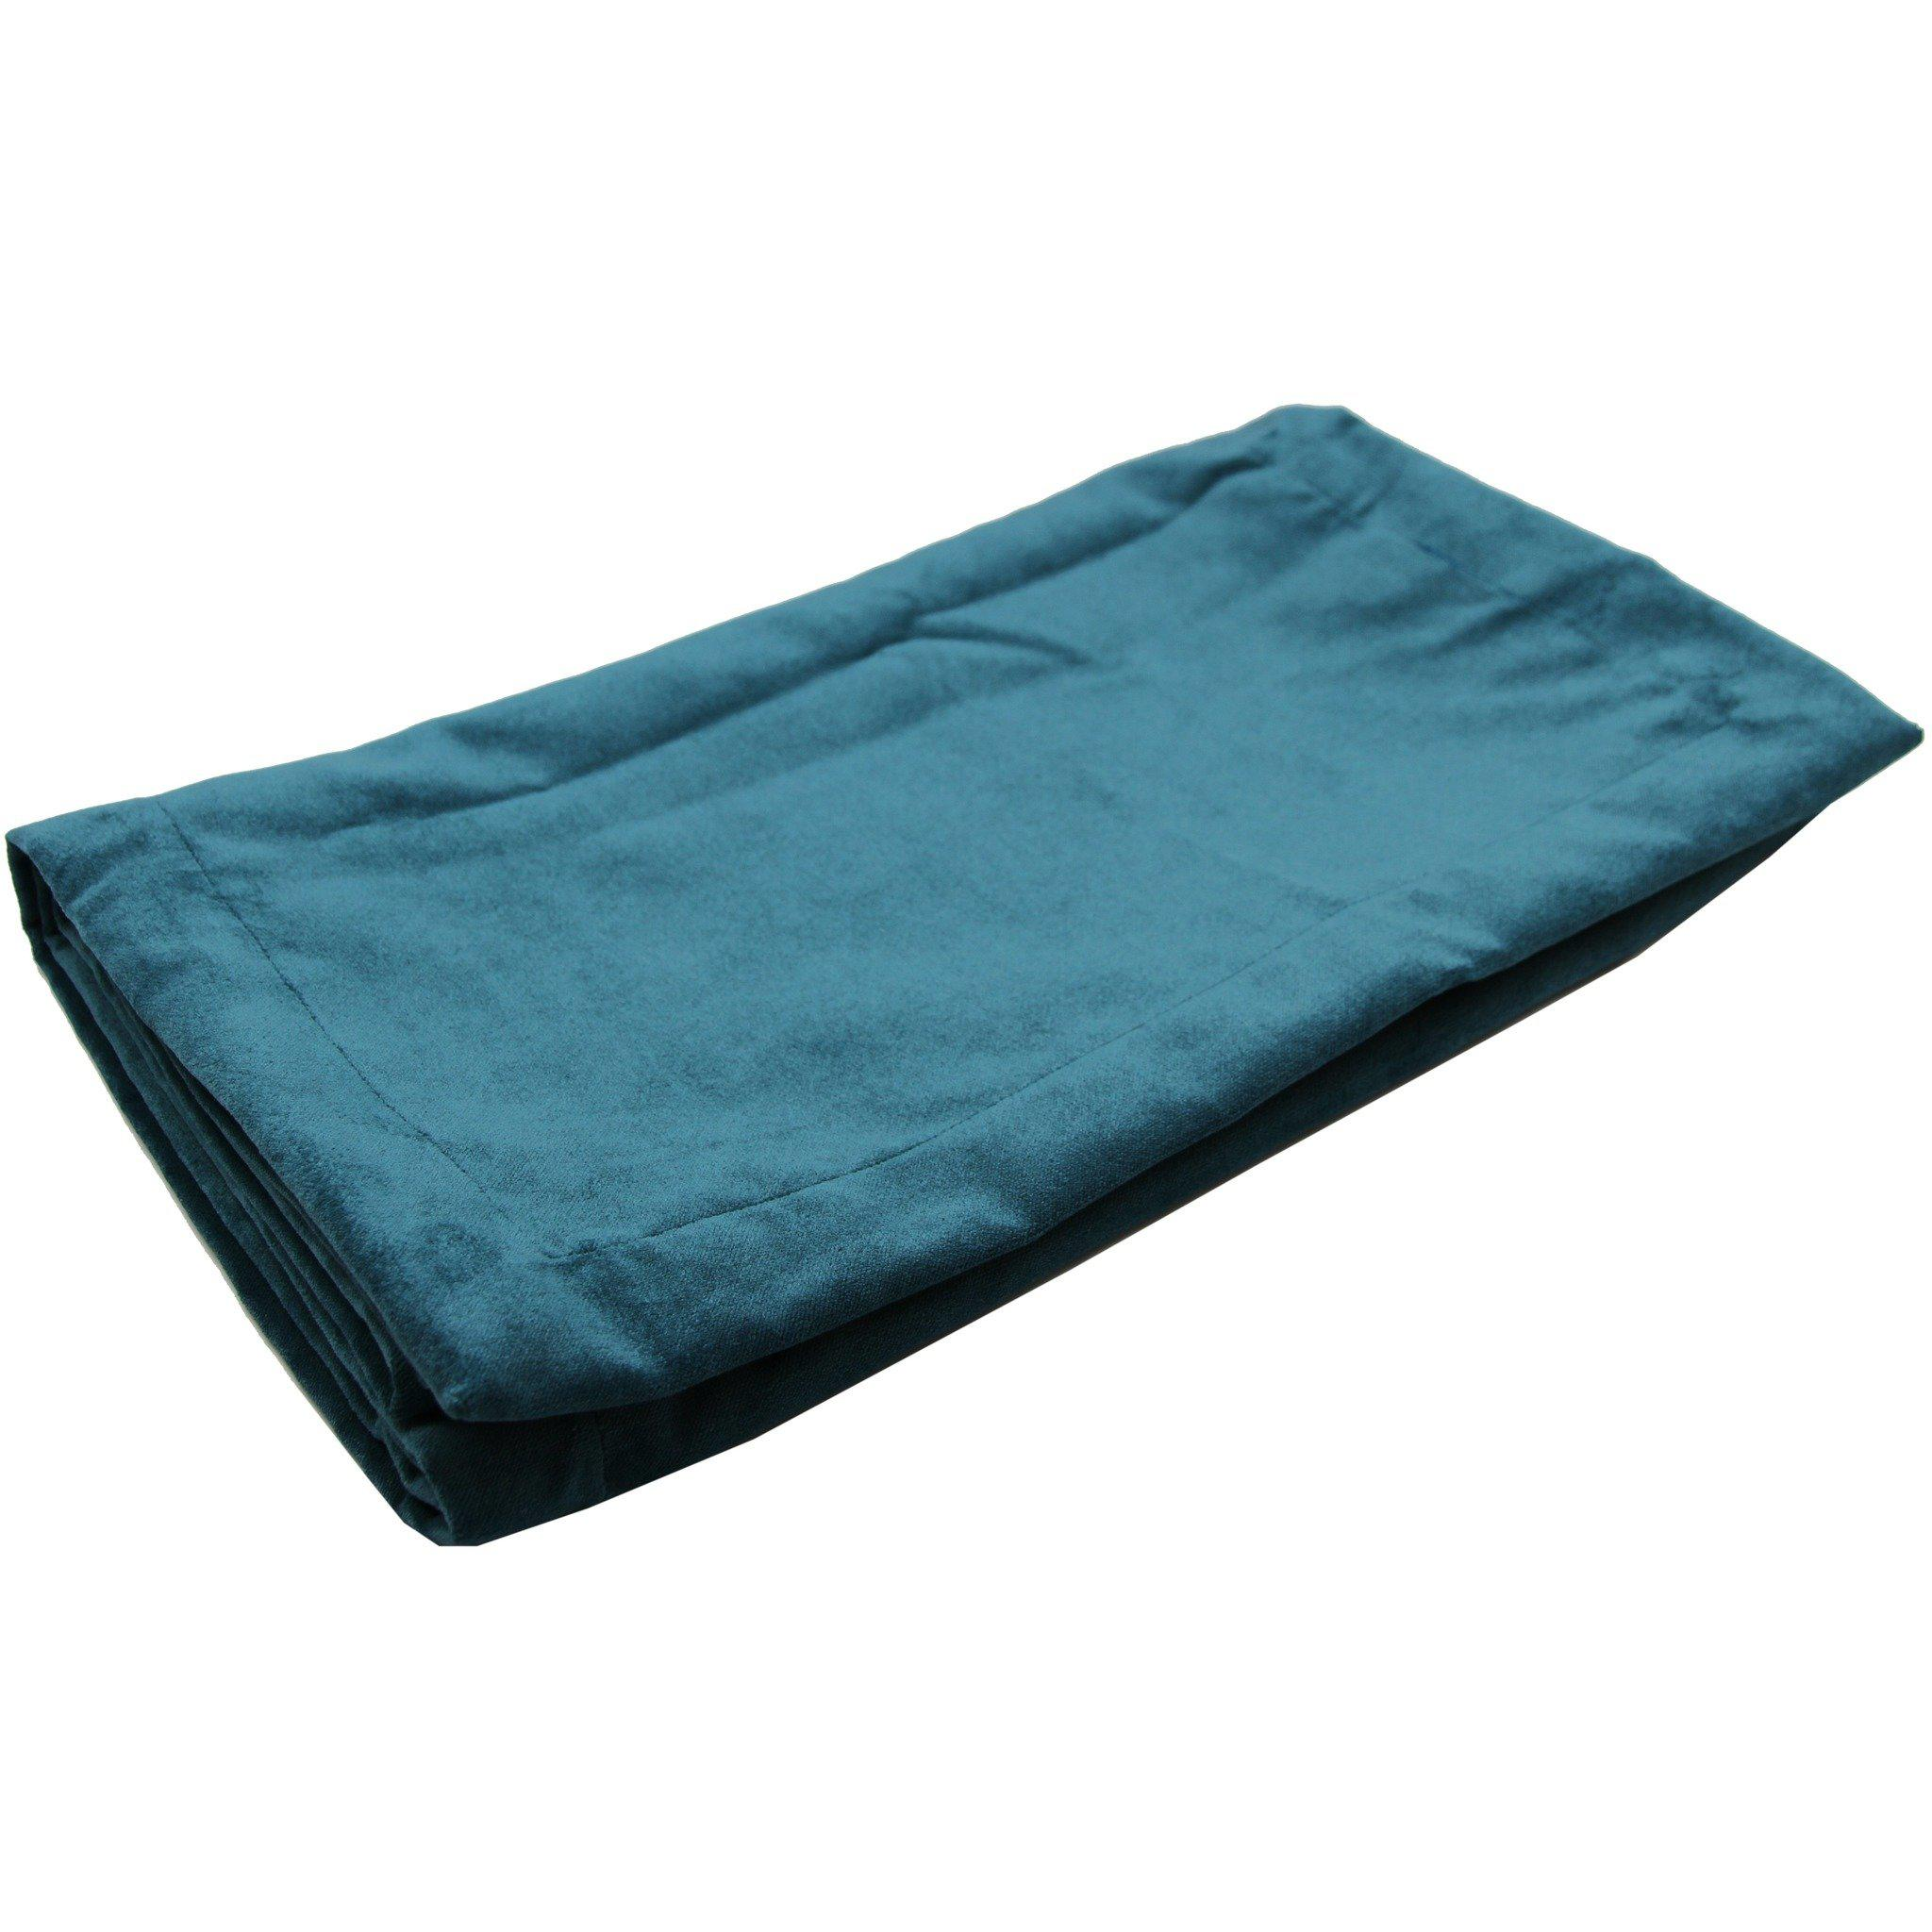 McAlister Textiles Matt Blue Teal Velvet Table Runner Throws and Runners Table Runner (30cm x 200cm)